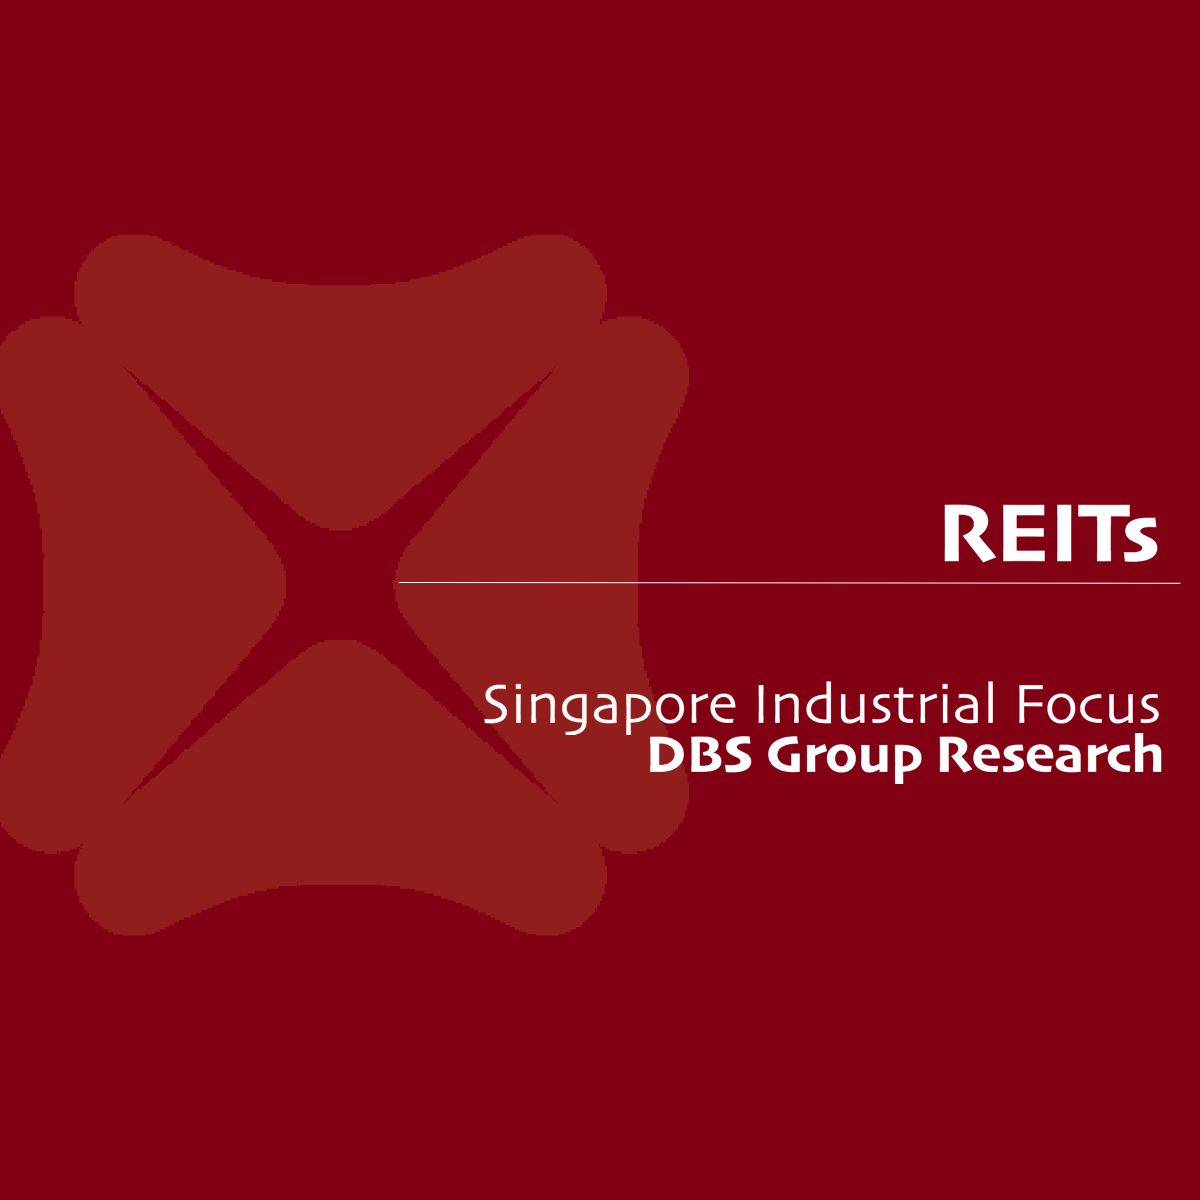 Singapore REITs - DBS Vickers 2017-05-17: Cycling Up